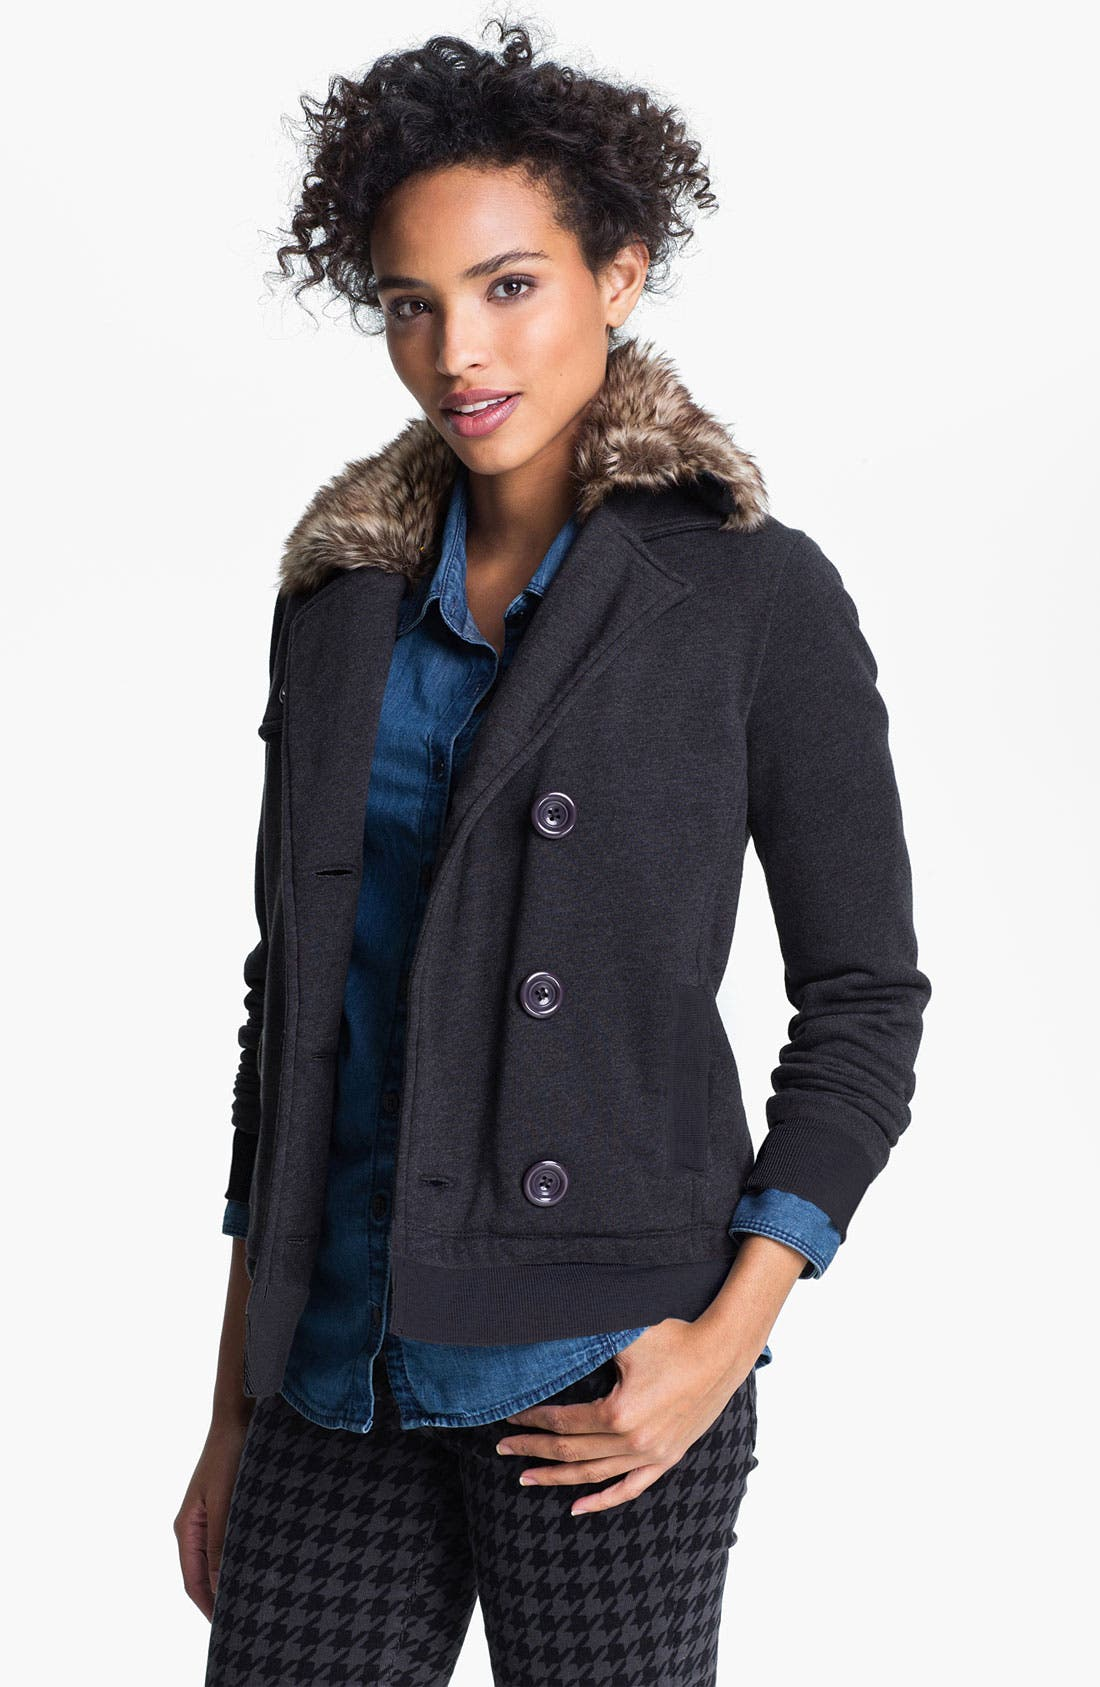 Main Image - Caslon® Double Knit Jacket with Faux Fur Collar